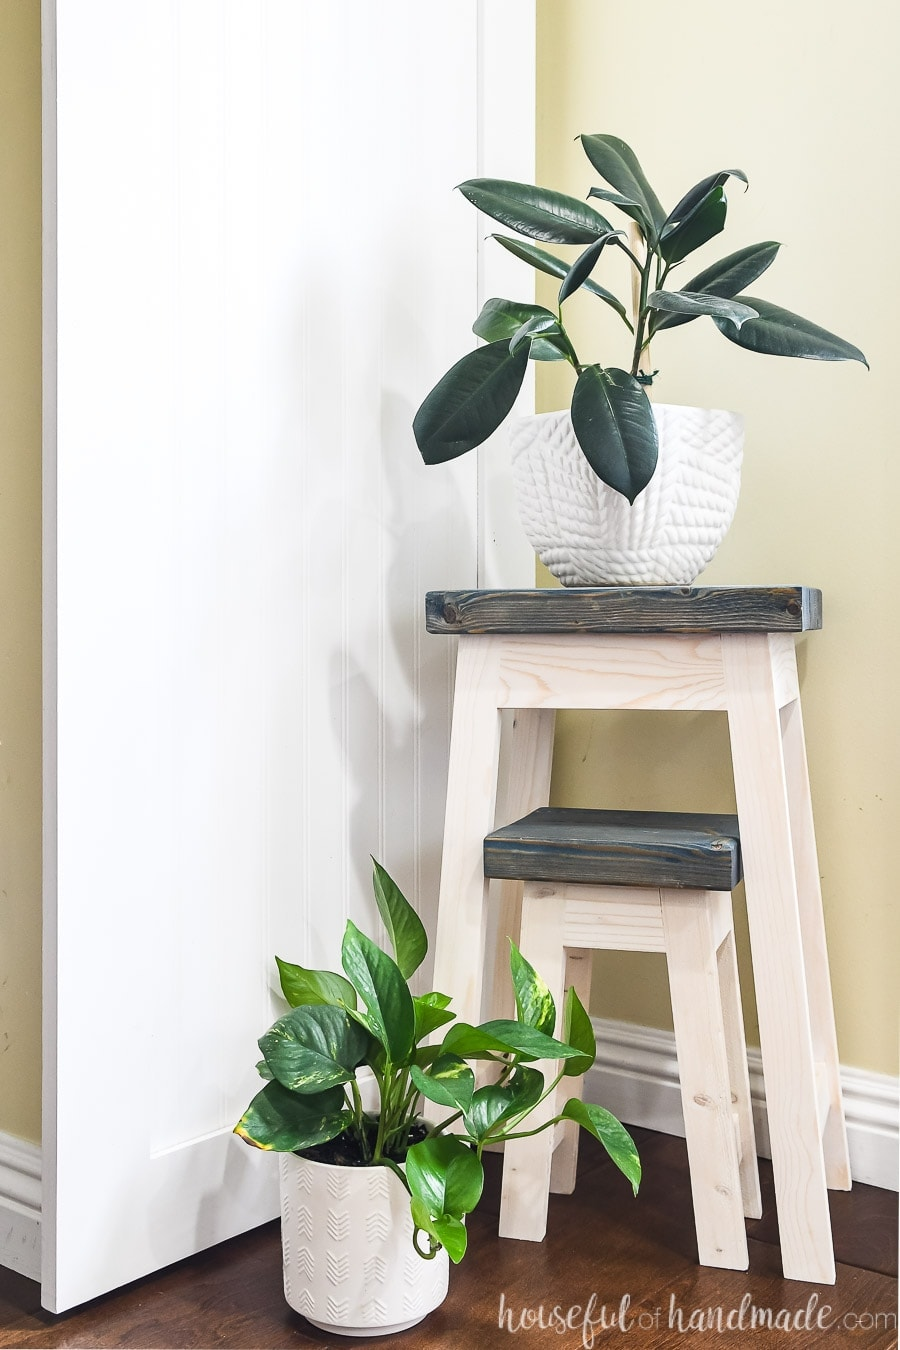 Nesting plant stands with the small stand tucked under the large one.